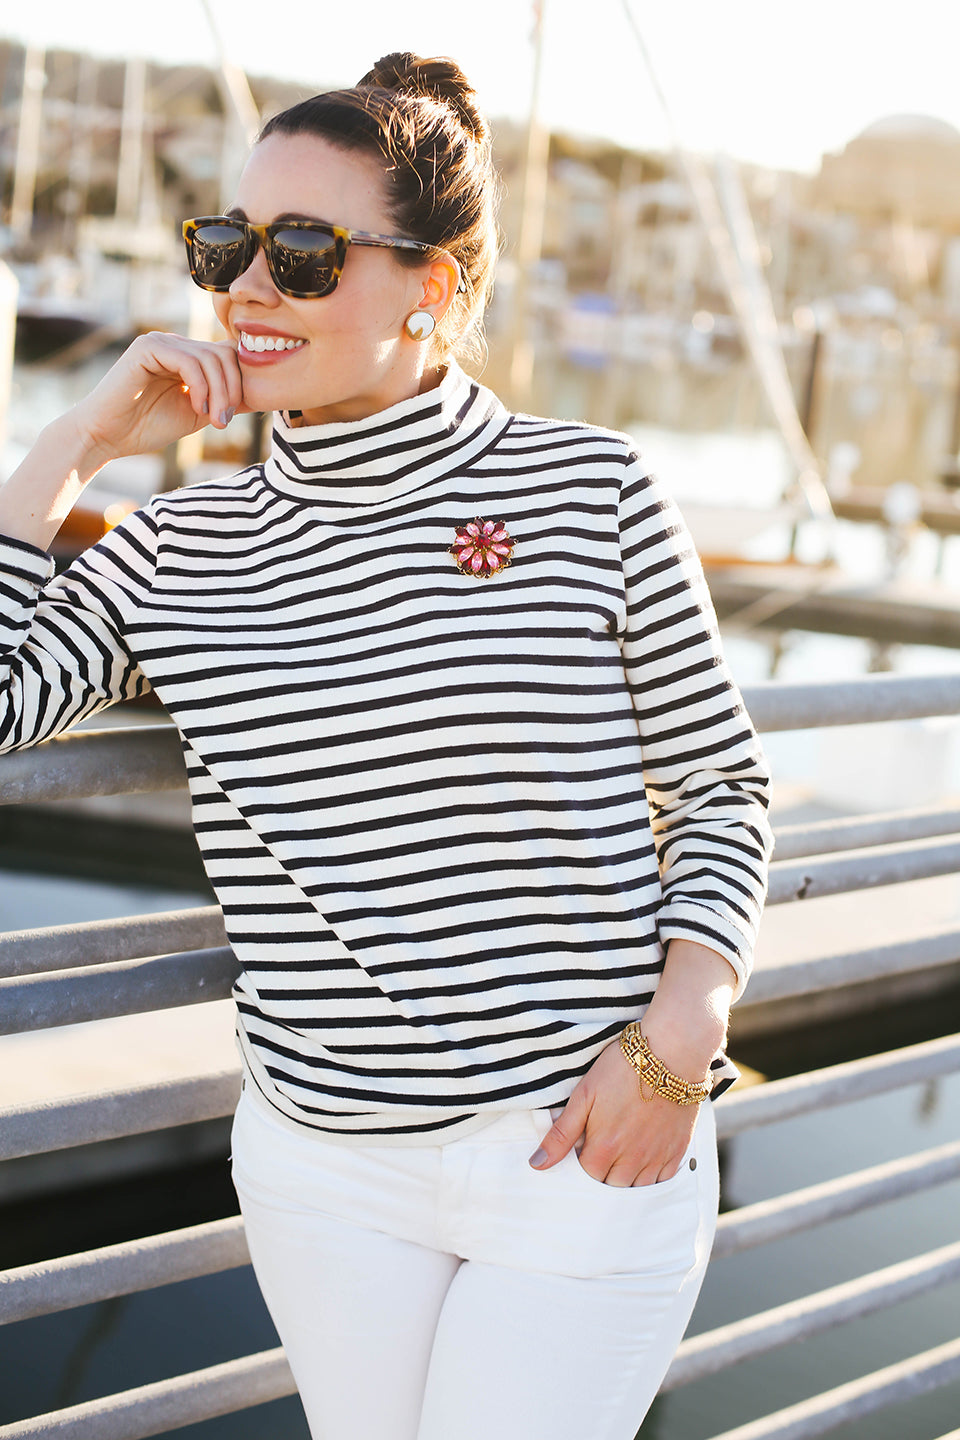 How to wear Stripes and a Rhinestone Brooch